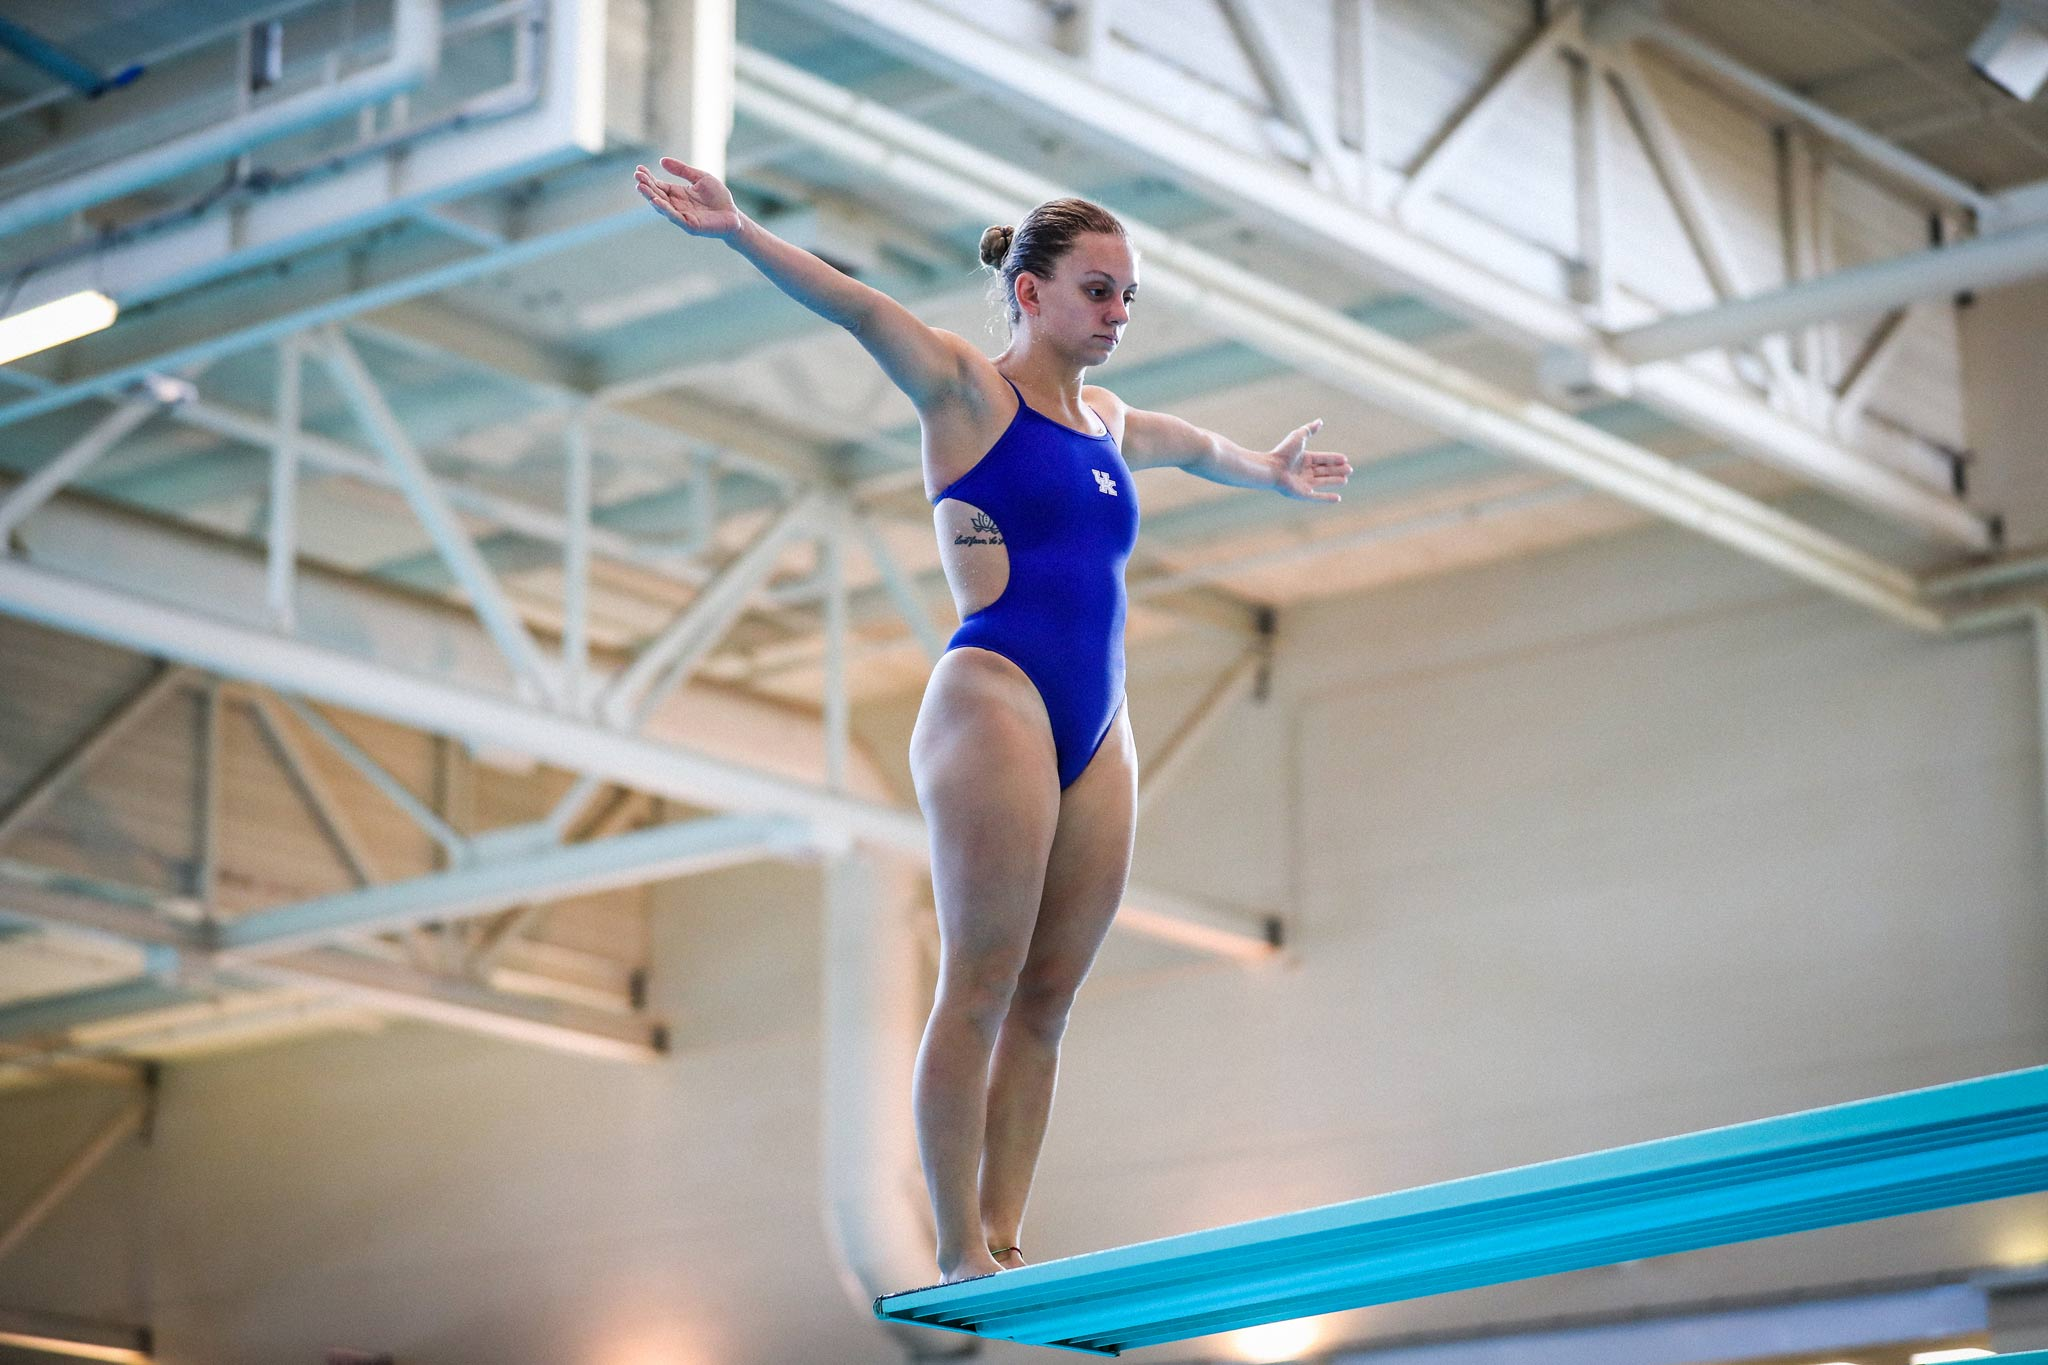 Emma stands on a balance beam during practice. She has her arms out and is wearing a blue UK swimsuit.